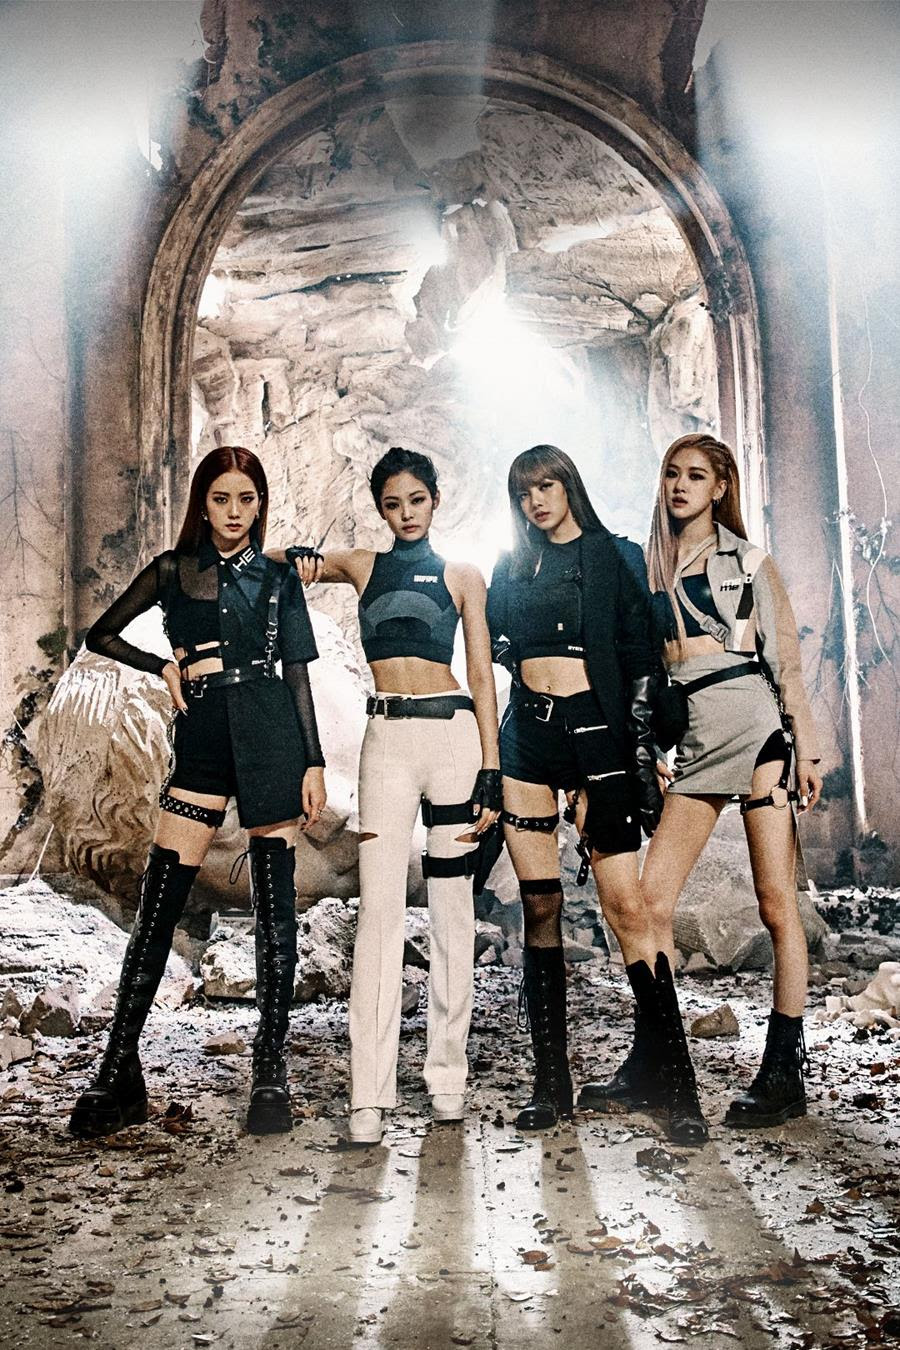 Blackpink: The Richest K-pop Girl Groups in South Korea 2020